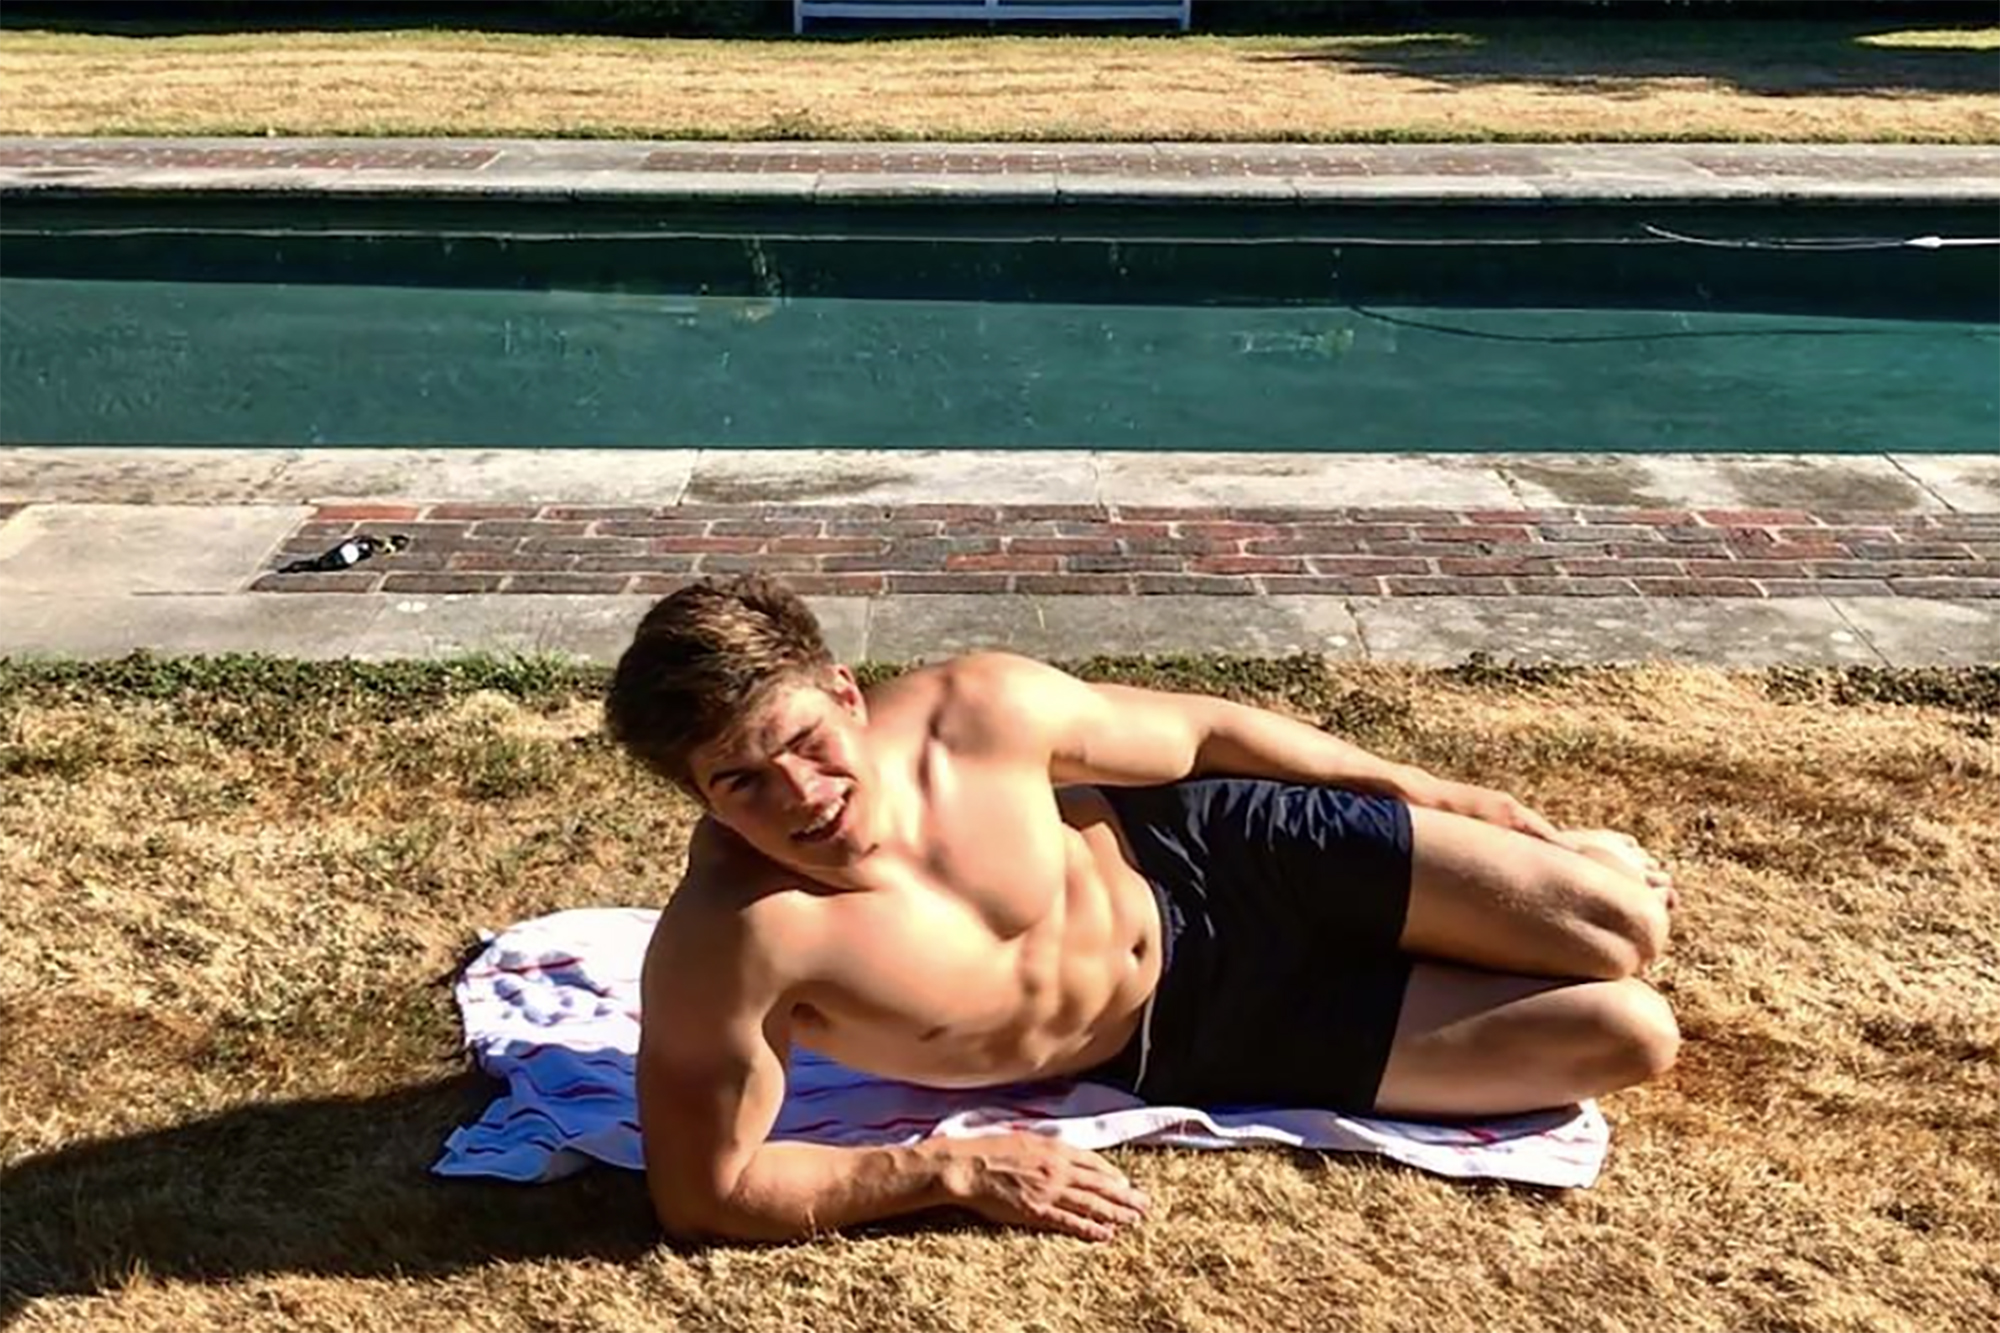 Queen's hot grandnephew Arthur Chatto is fitness royalty